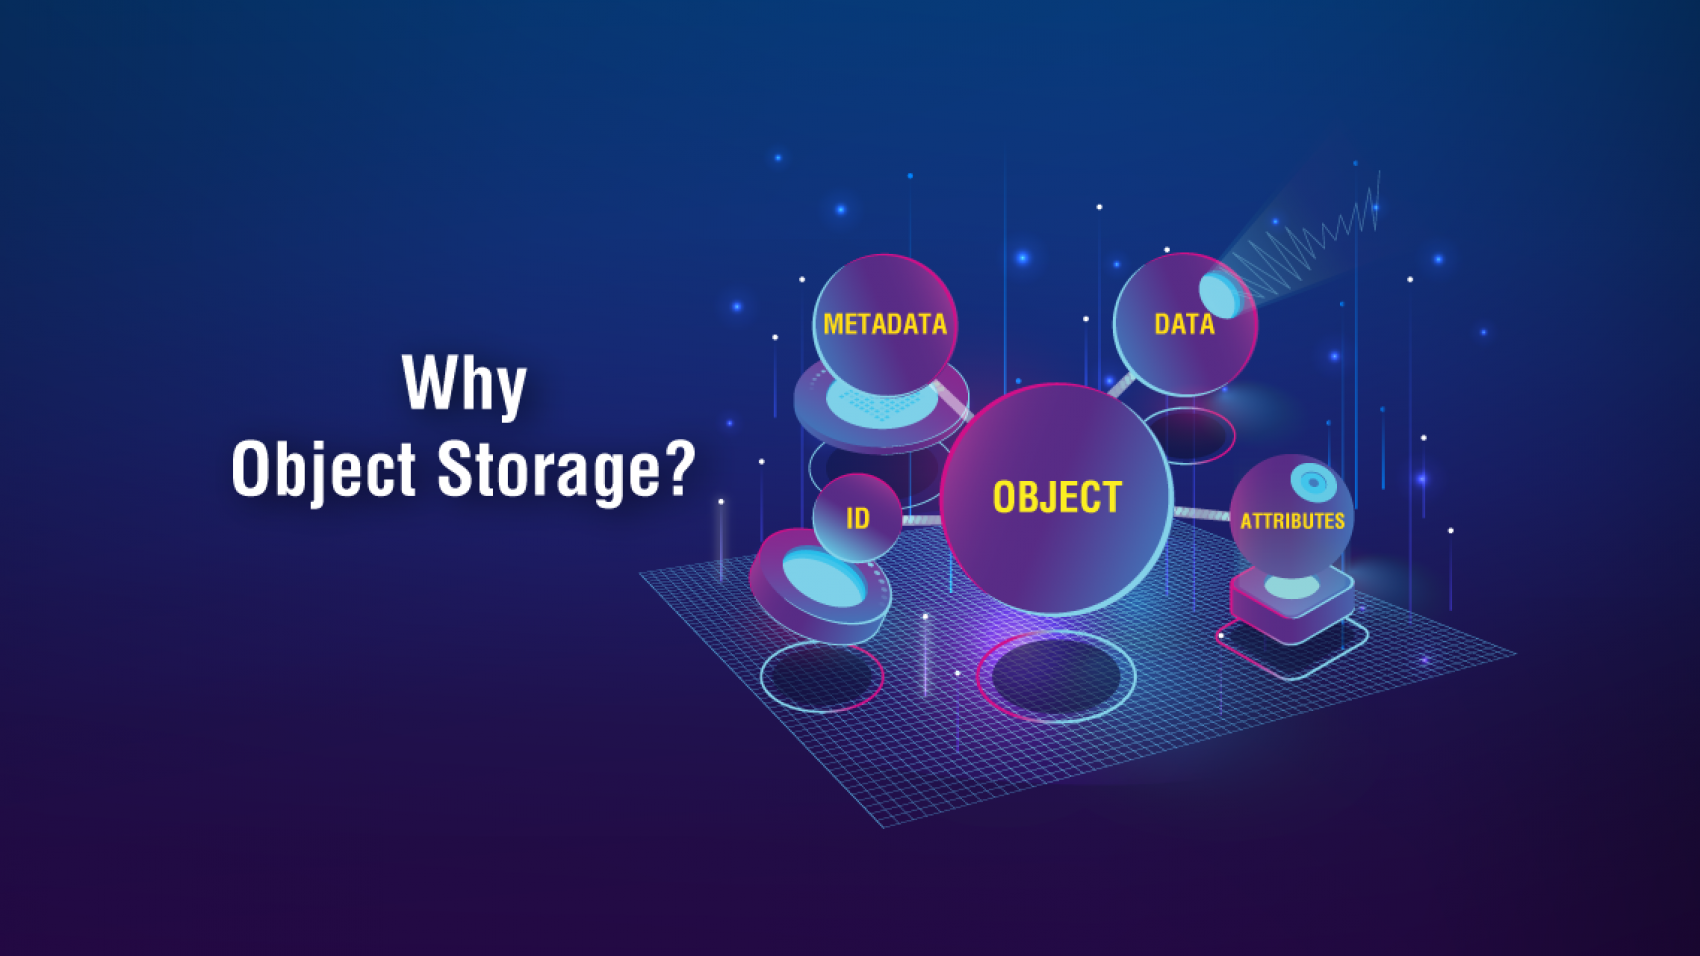 hpe-&-suse-why-object-storage